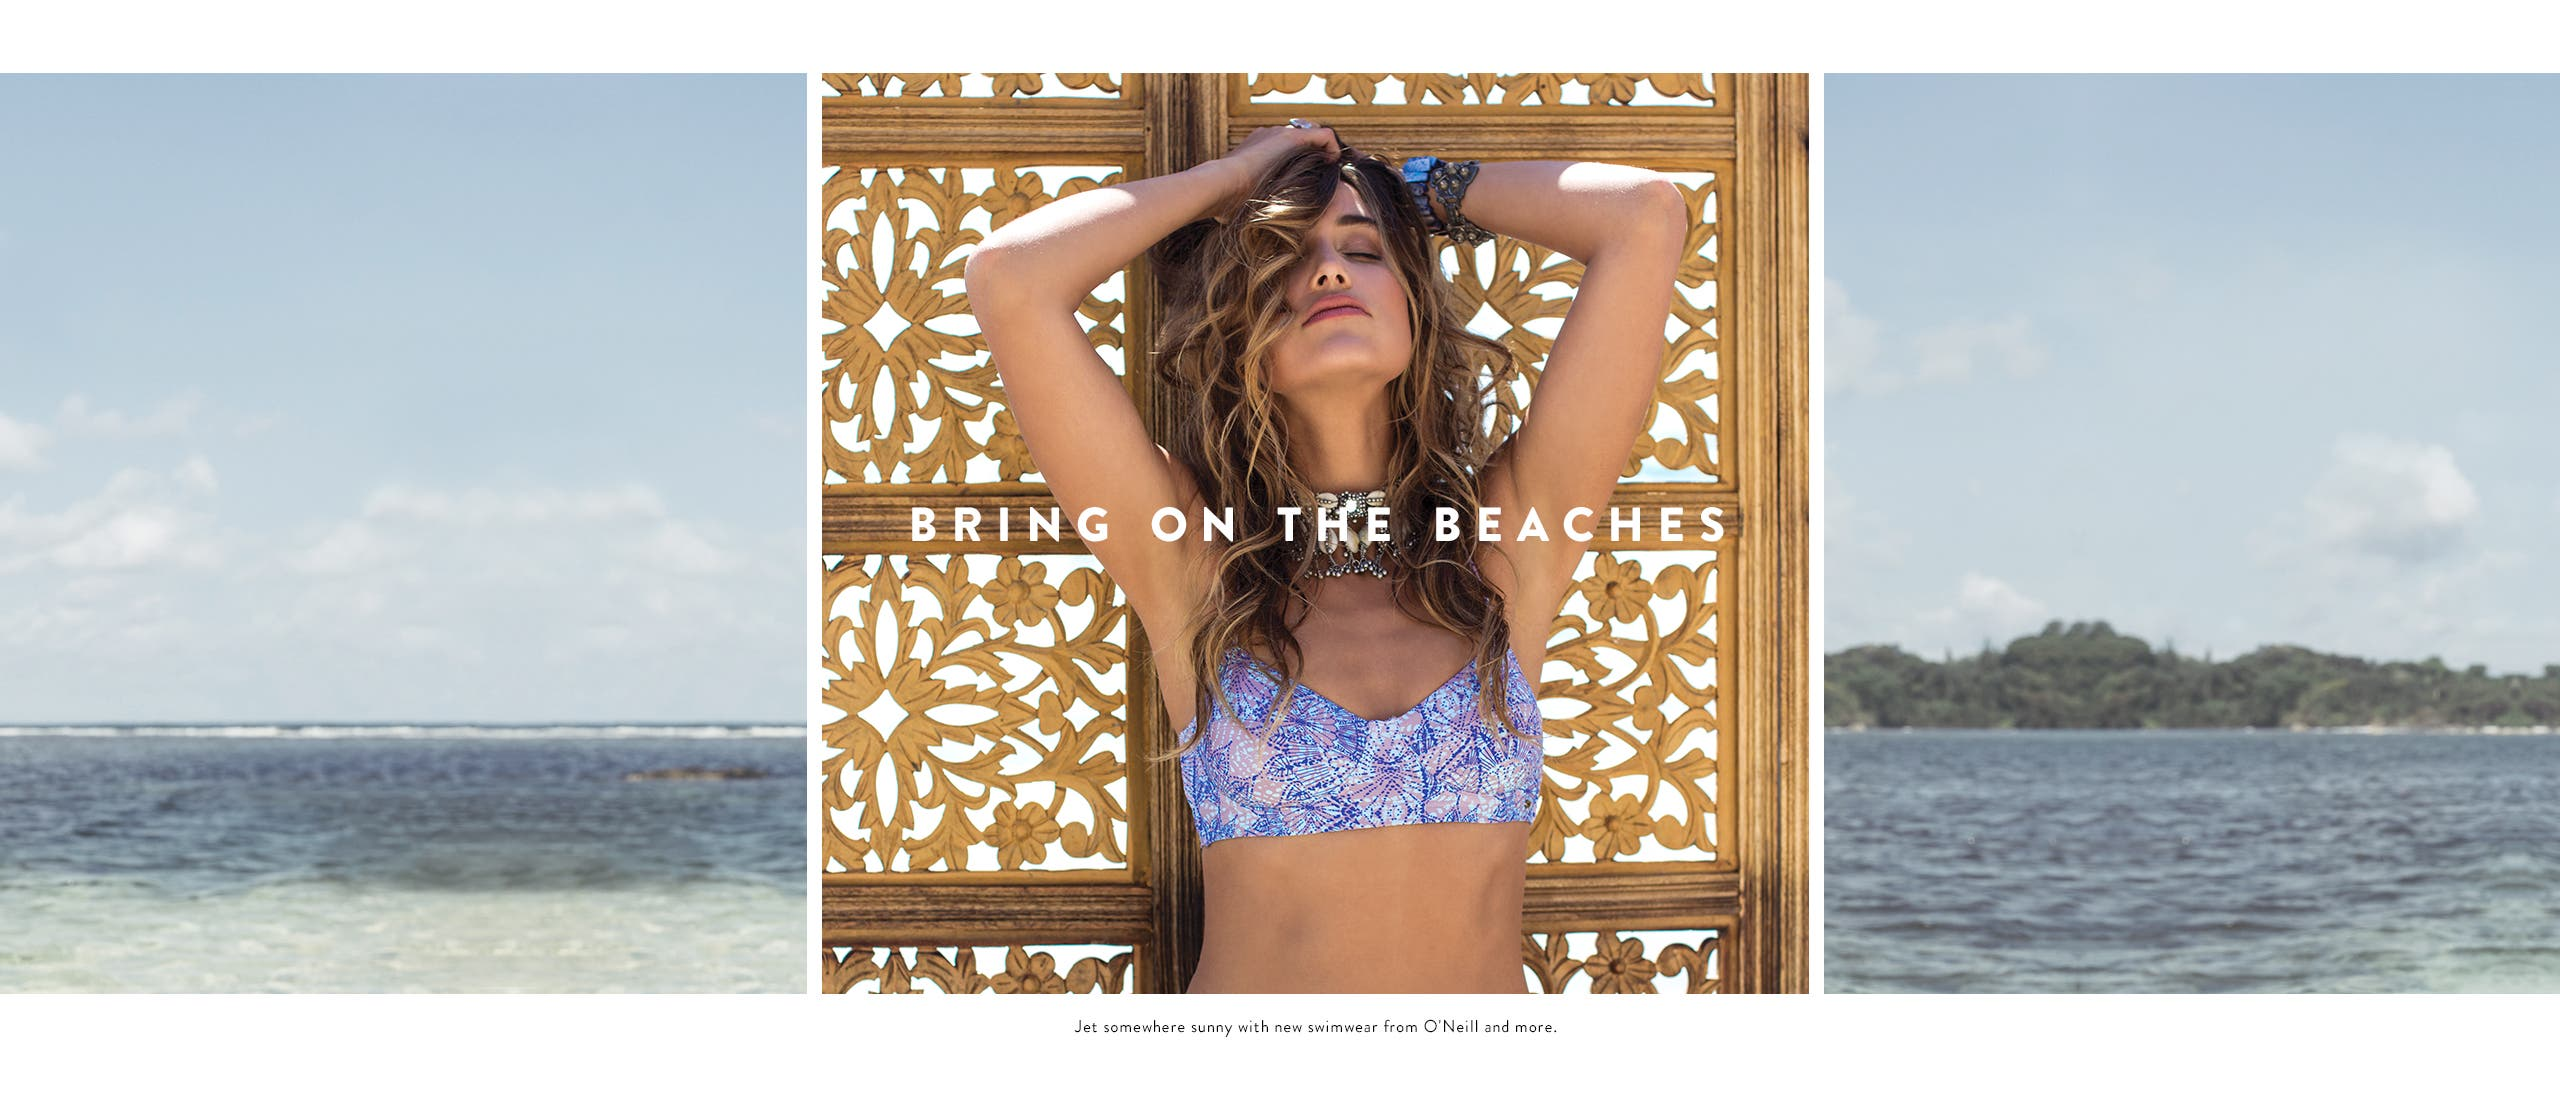 Bring on the beaches. Women's swimwear and other vacation essentials.